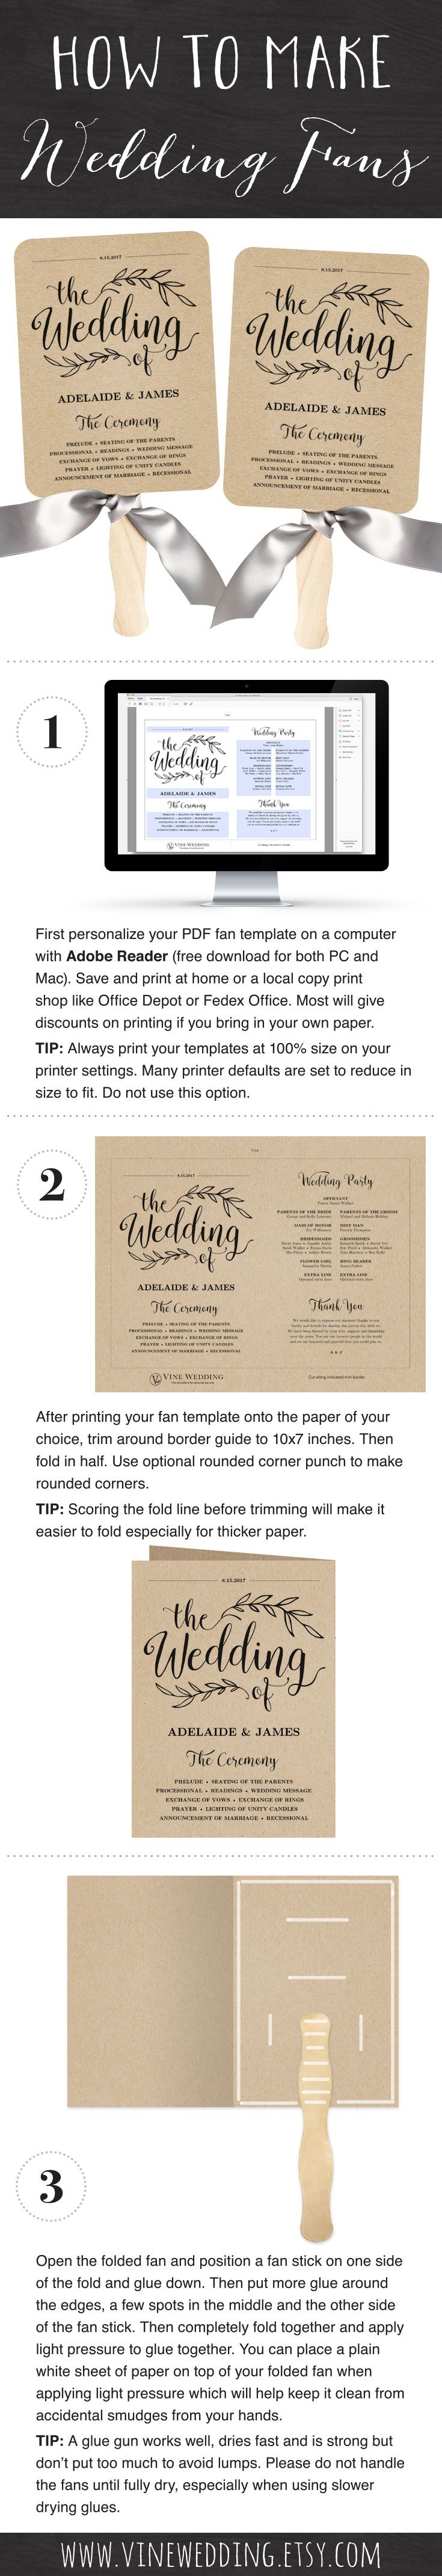 Printable wedding fan program template DIY kraft paper wedding fan